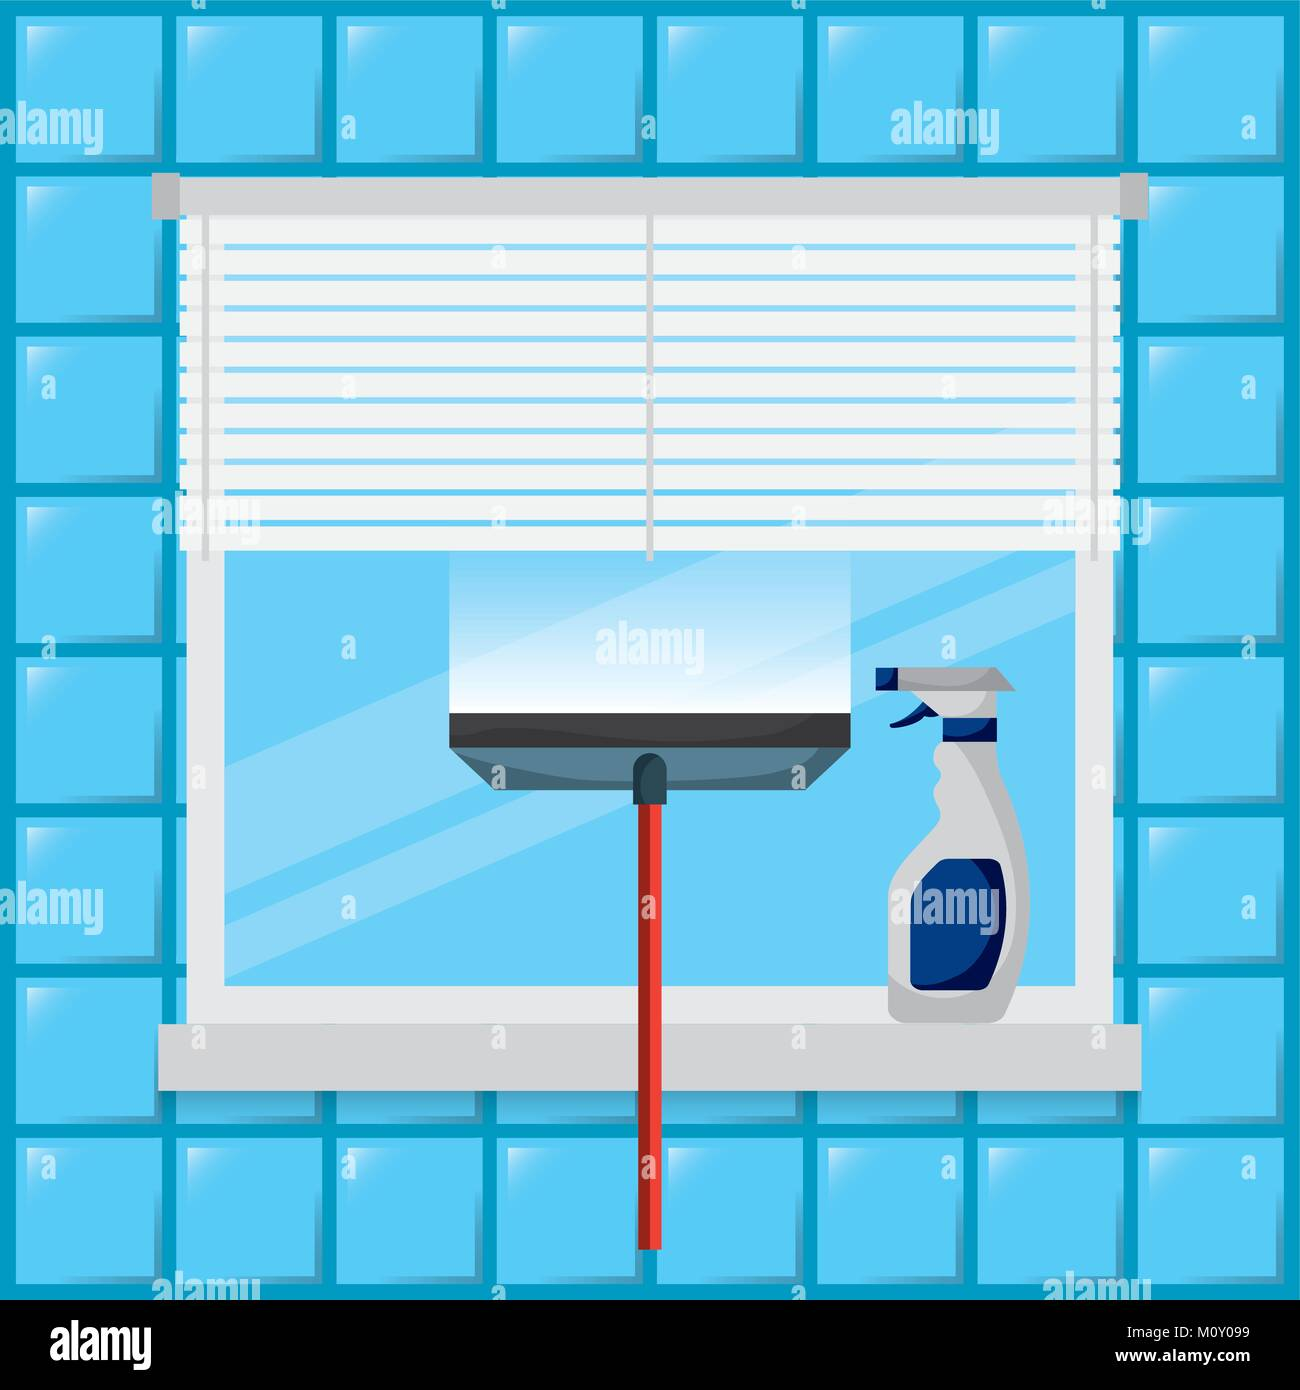 Squeegee Stock Photos Squeegee Stock Images Alamy